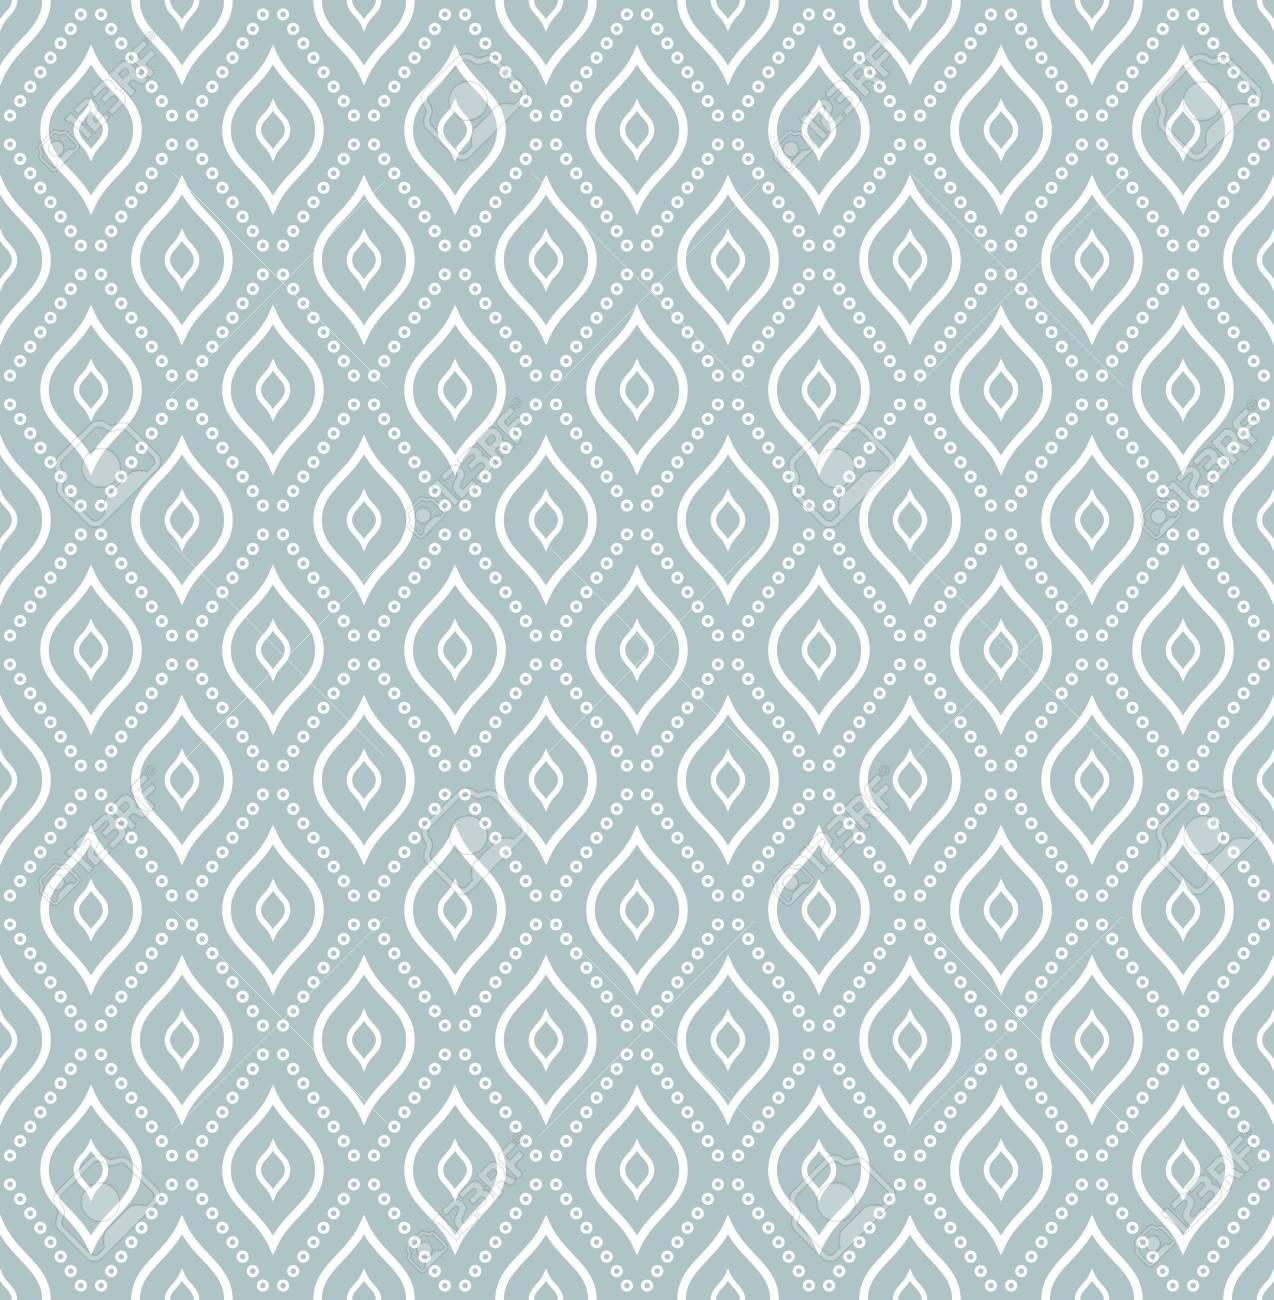 Geometric Dotted Light Blue And White Pattern Seamless Abstract